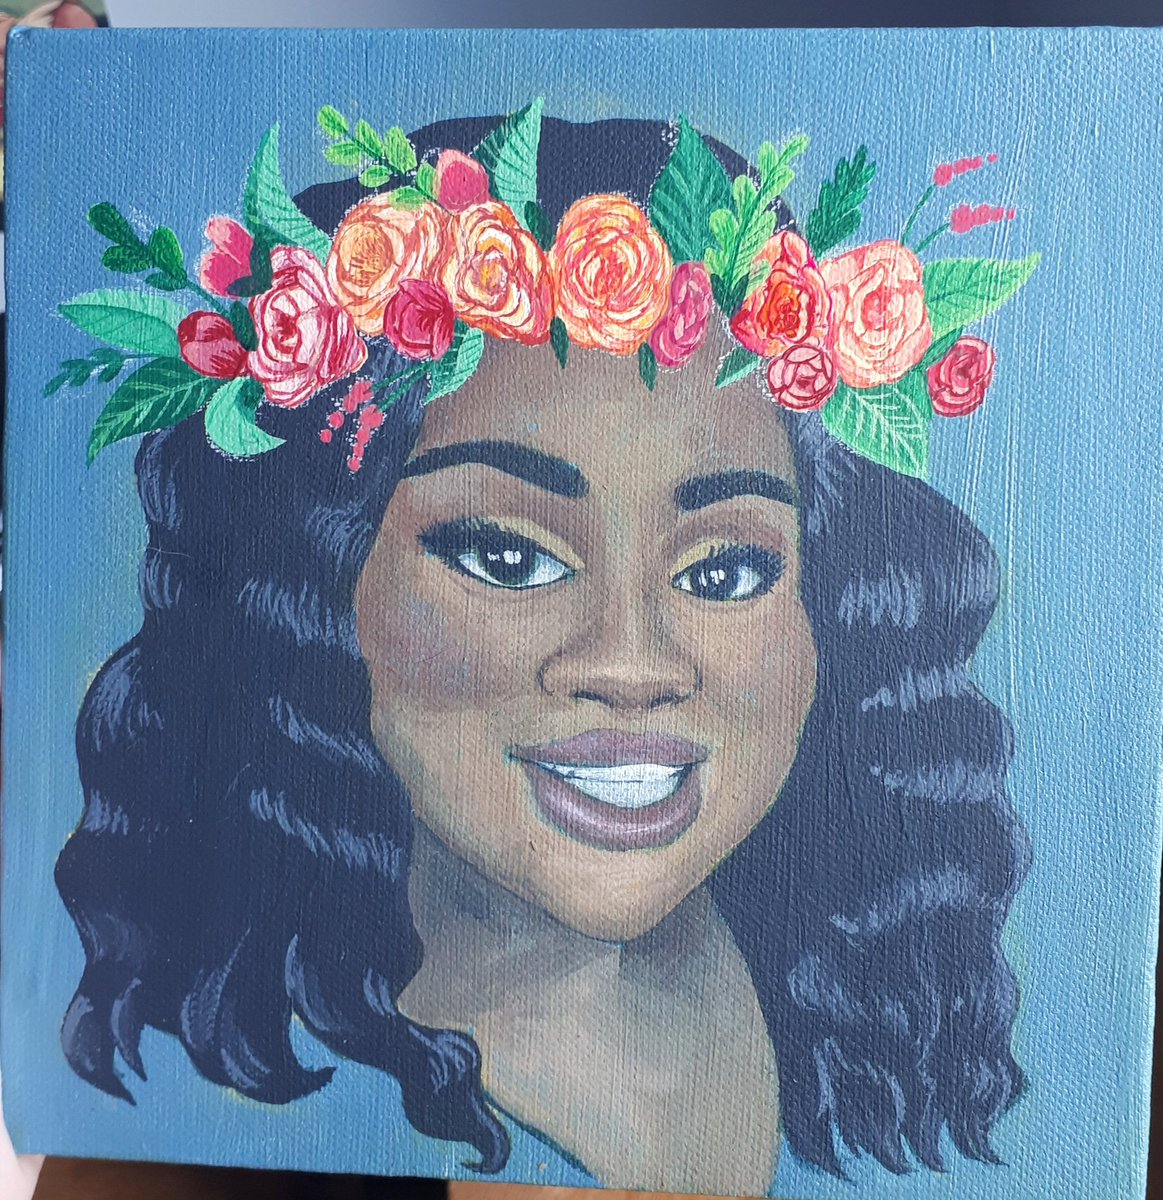 Saw @gracieleeart make a gorgeous picture of Miss Breonna Taylor with a flower crown and wanted to make one too. Finally finished ❤ Happy Birthday sweet girl ❤  #happybirthdaybreonnataylor #blacklivesmatter #flowercrown